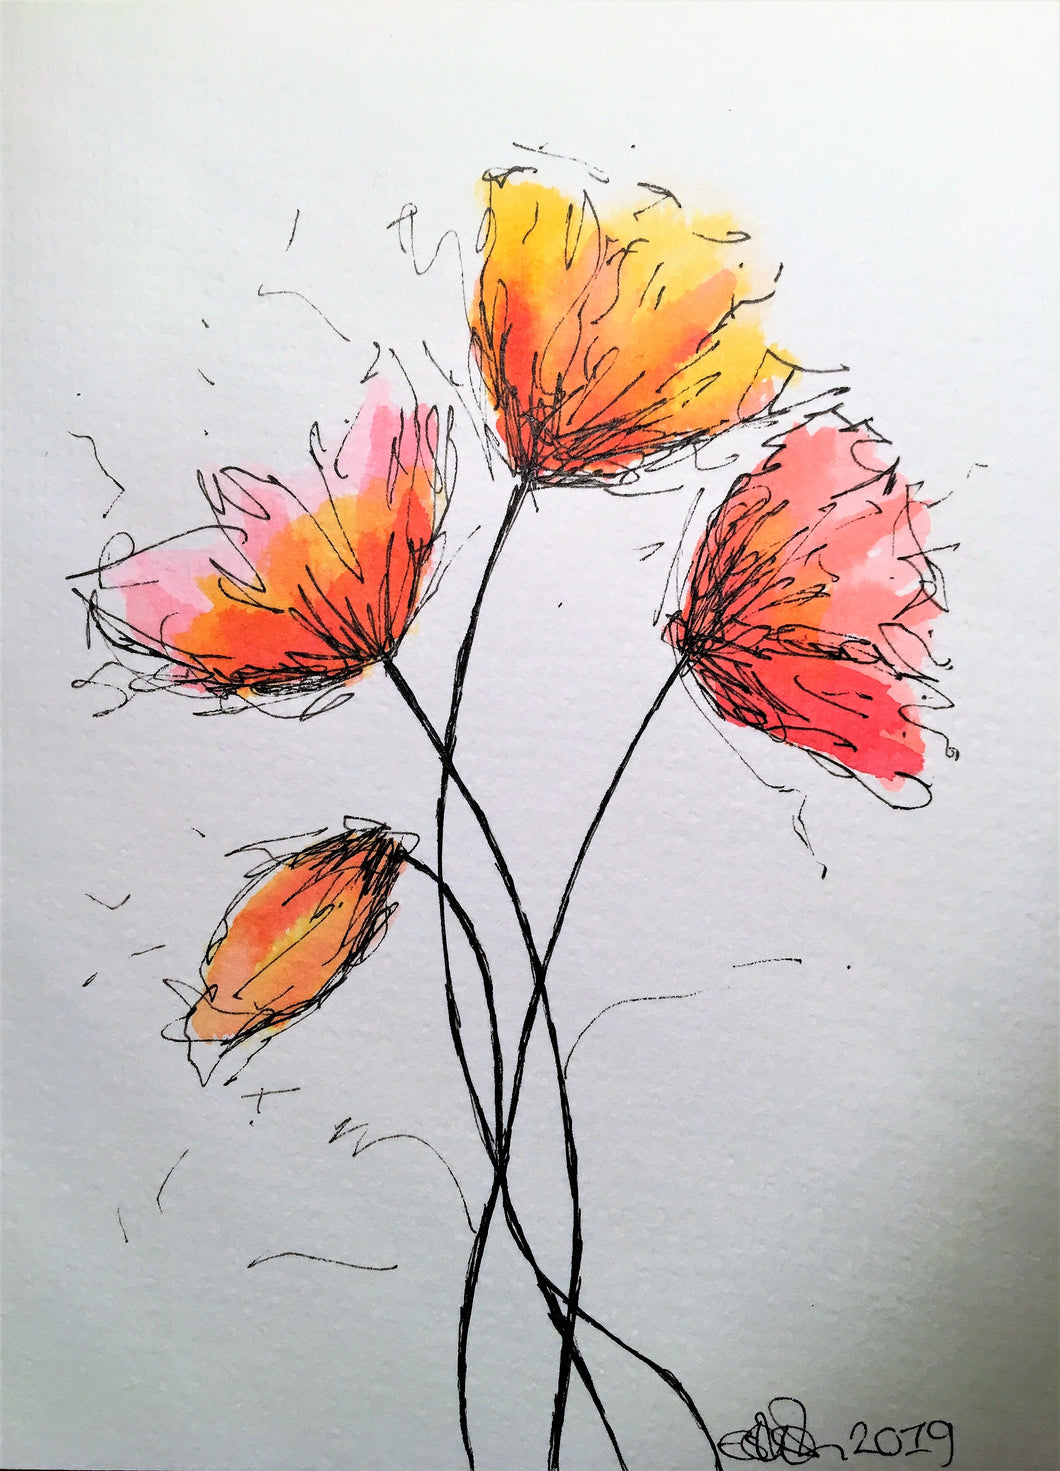 Handpainted Watercolour Greeting Card - Abstract Red/Orange Poppies Design - eDgE dEsiGn London